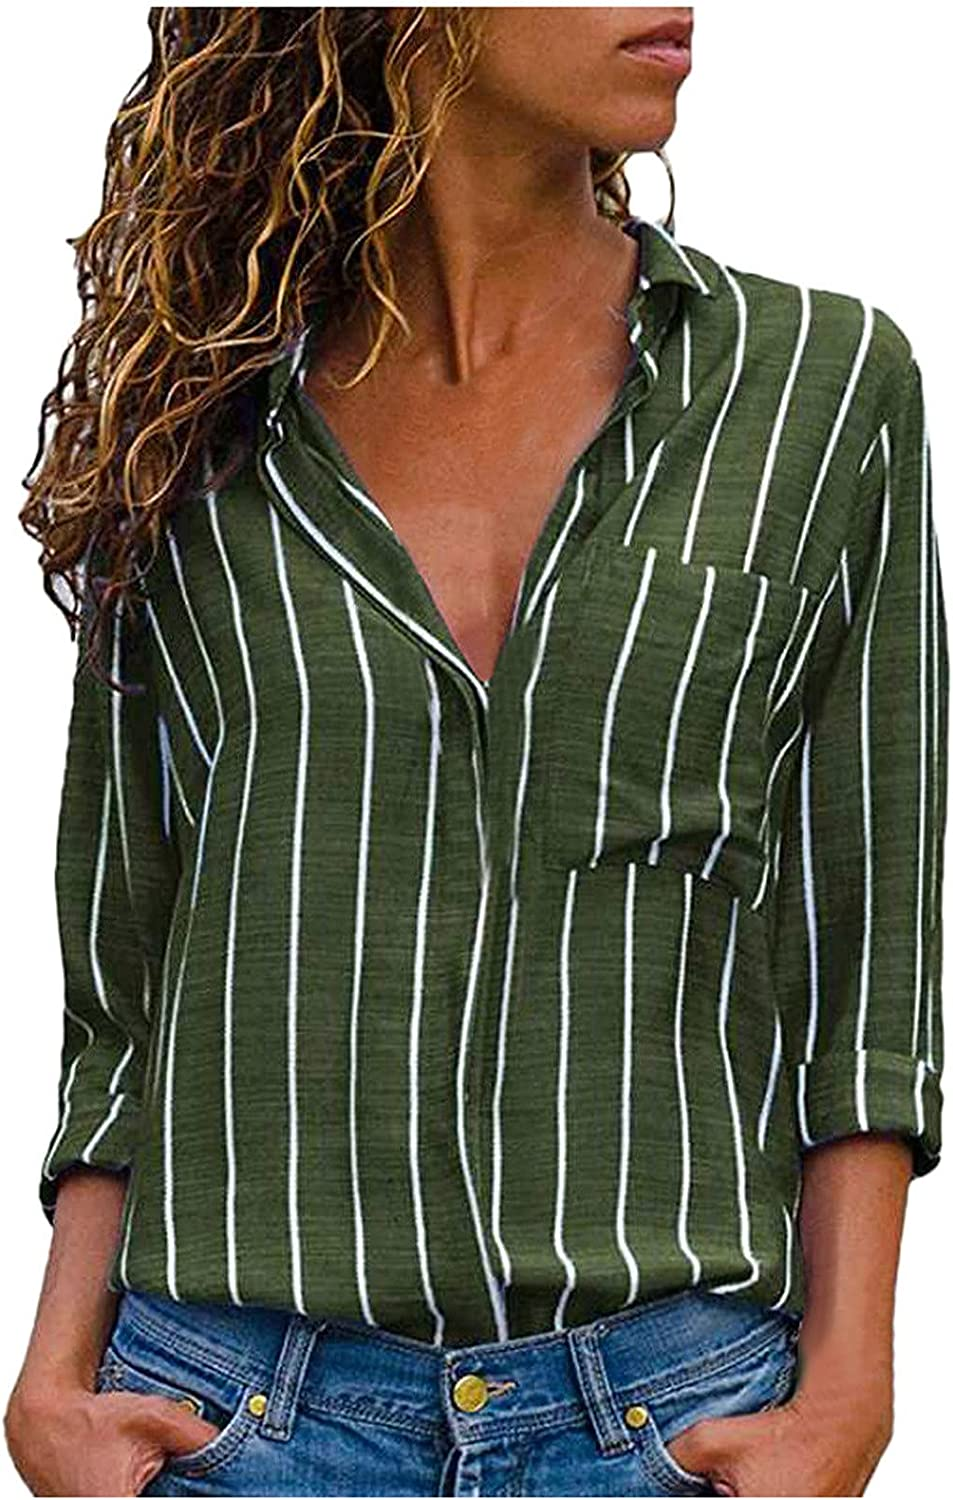 Women's Striped Blouse V Neck 3/4 Sleeve T Shirts Casual Button Down Tops Loose Pocket Tshirt Modern Fashion Tops